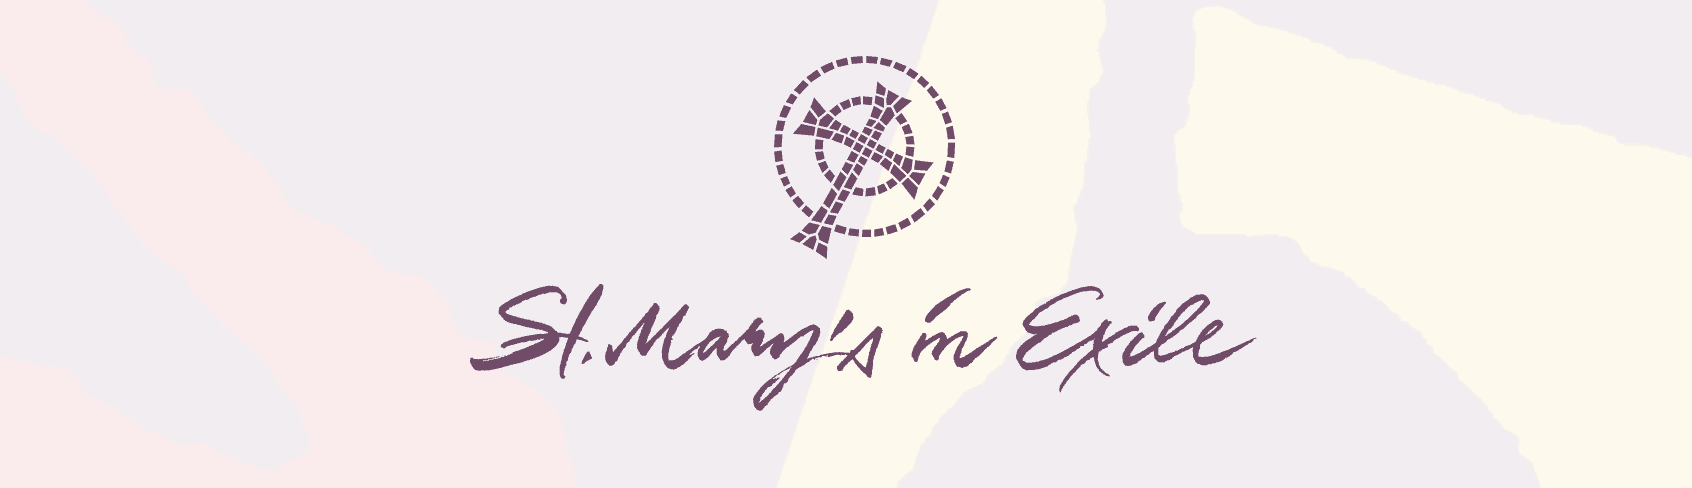 Chatting at St Mary's in Exile